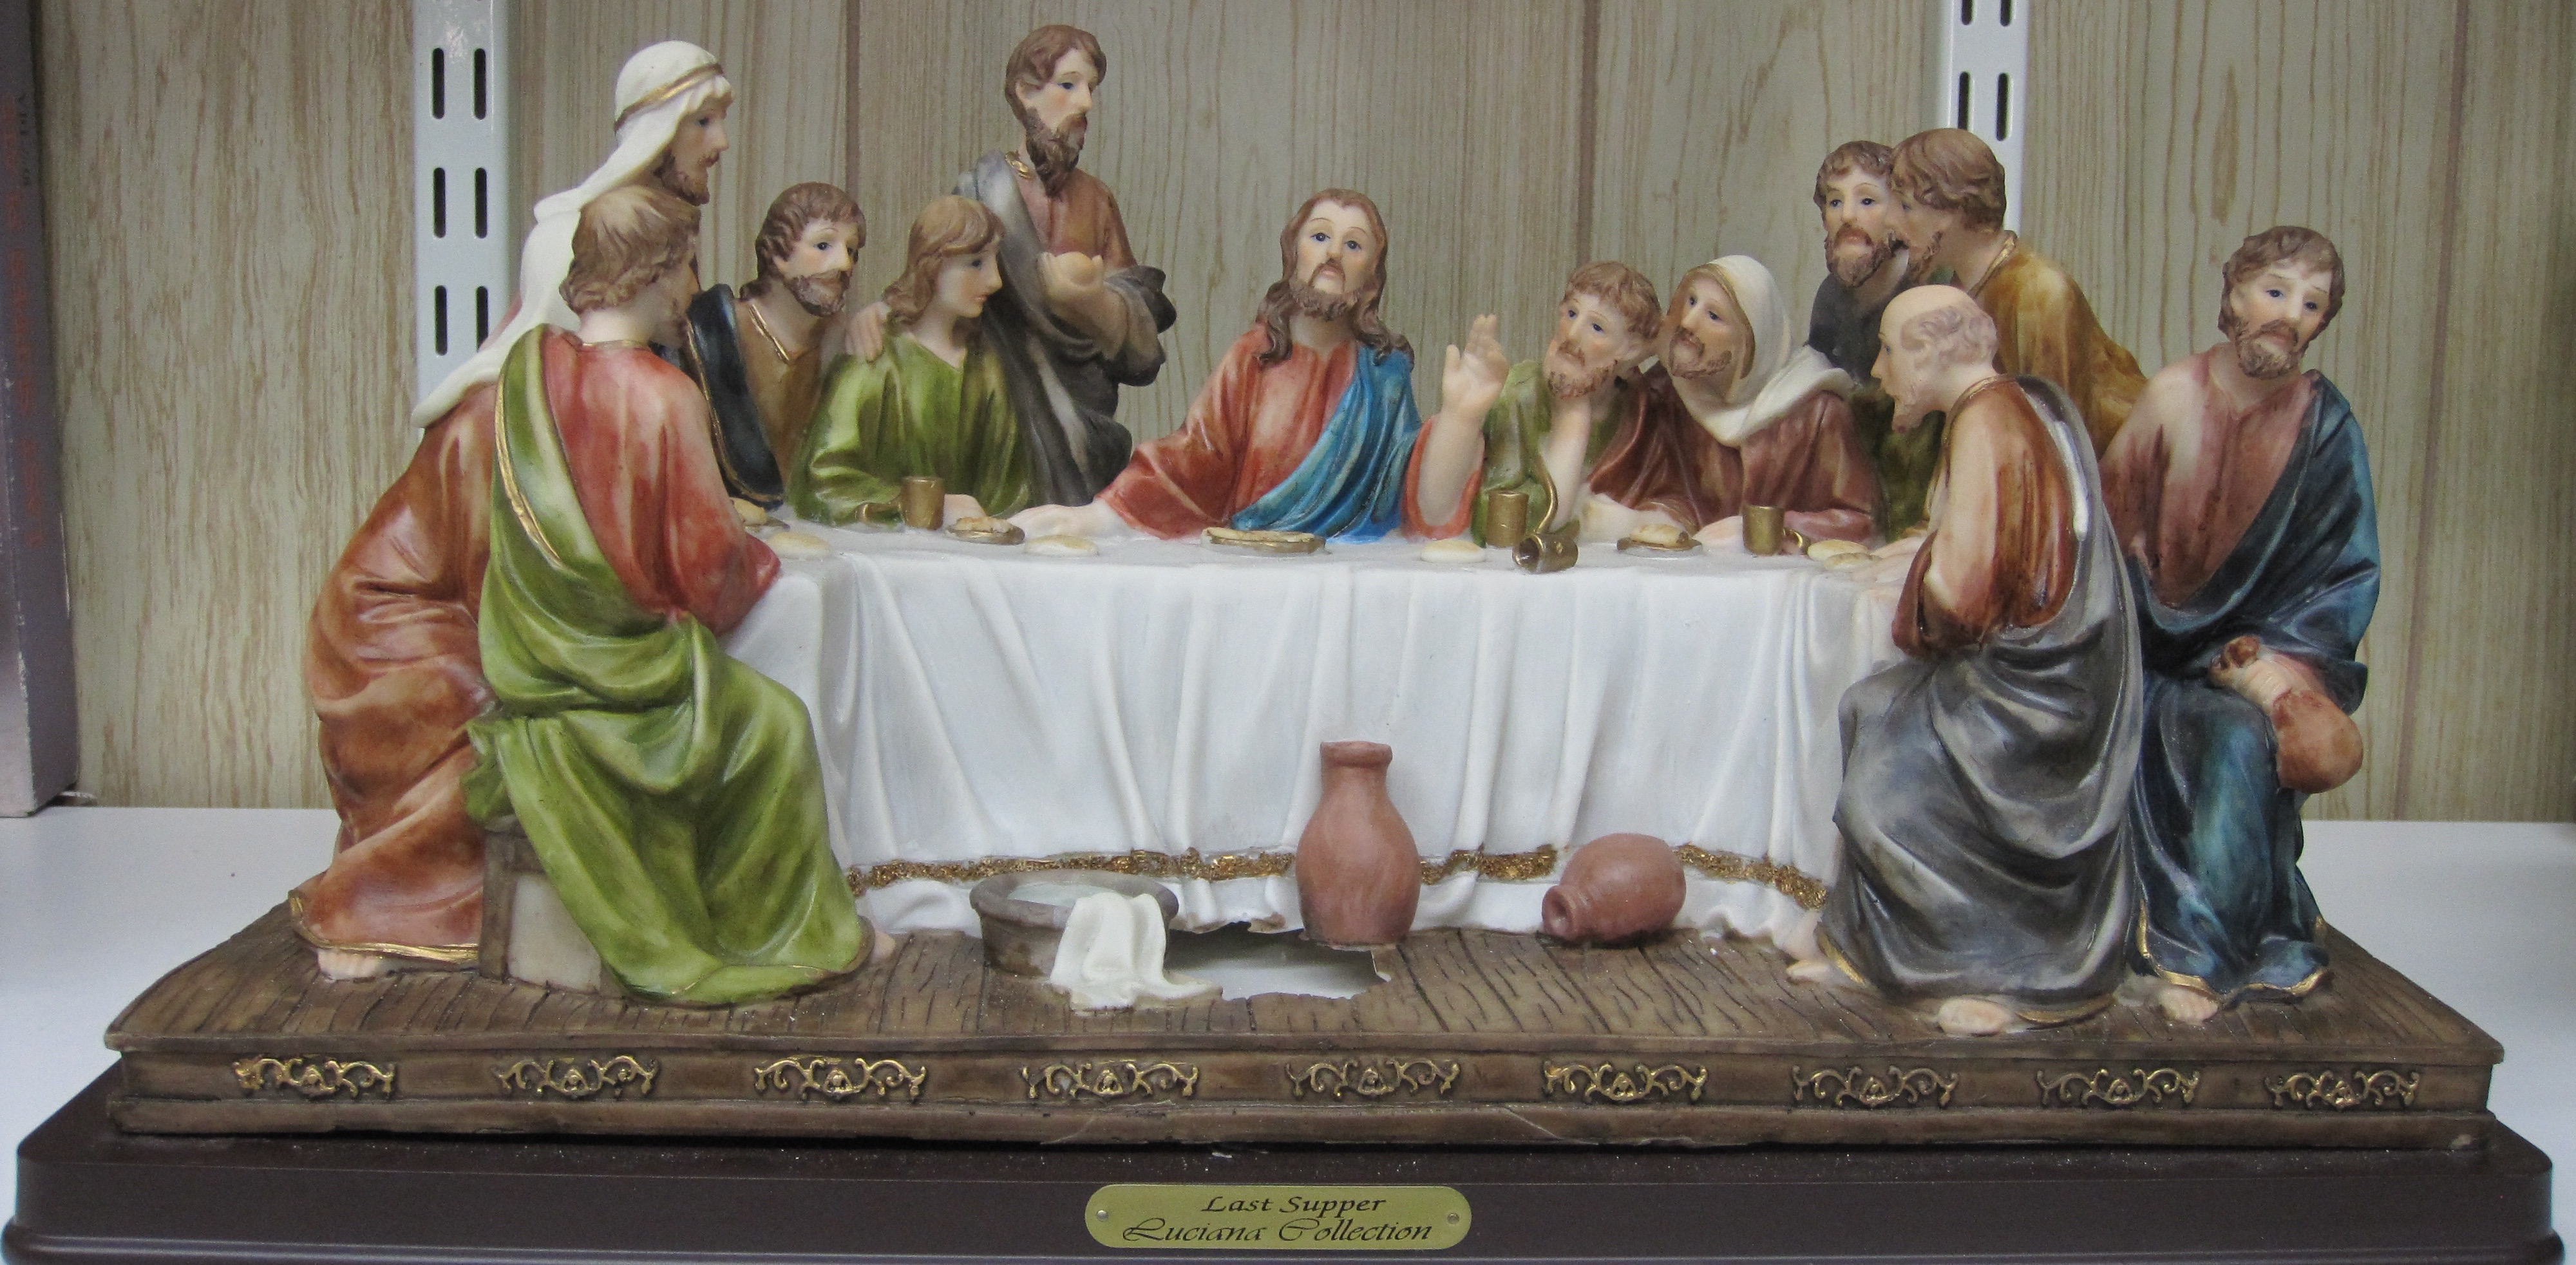 The Last Supper Display